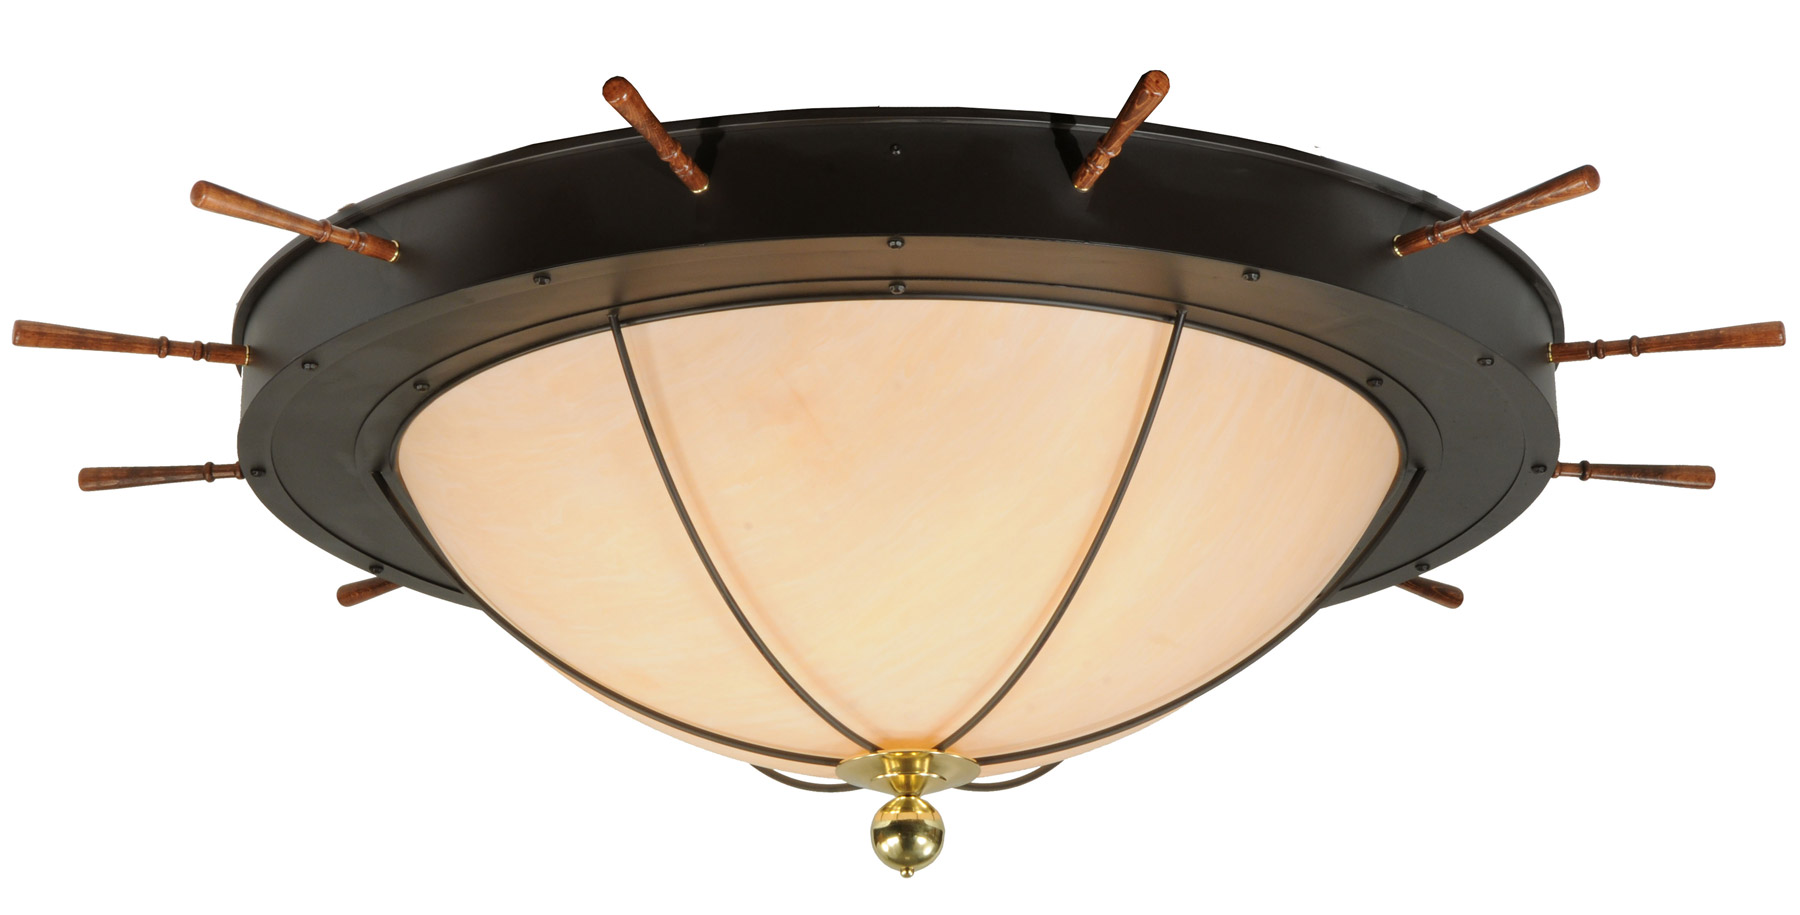 Meyda 140743 nautical flush mount ceiling fixture aloadofball Images